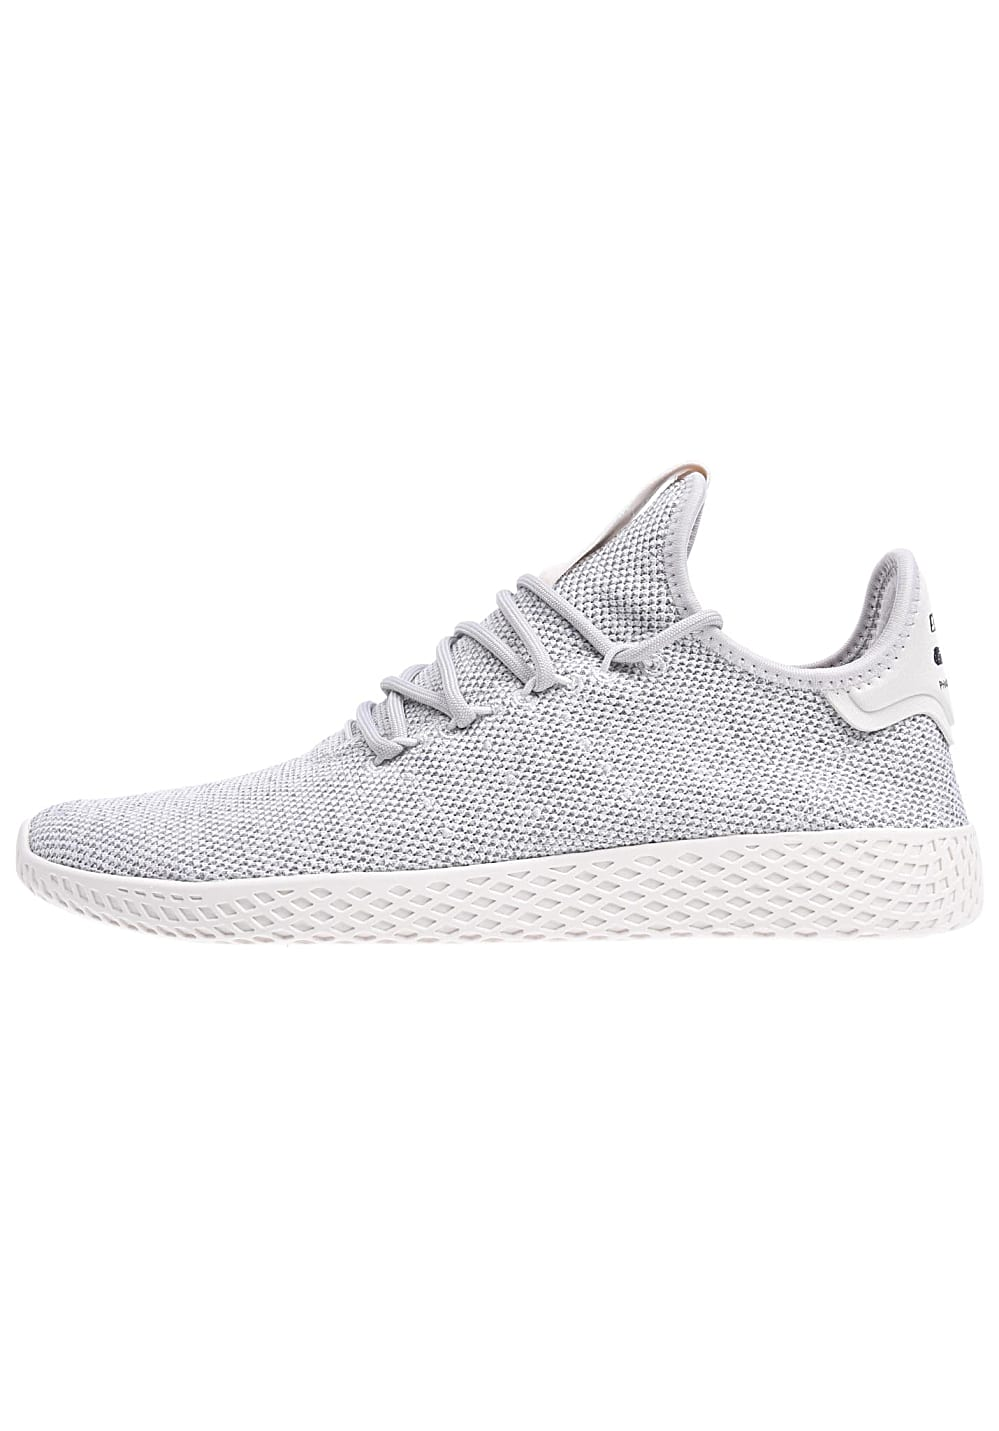 ADIDAS ORIGINALS Pharrell Williams Tennis Hu - Sneaker per Uomo - Grigio